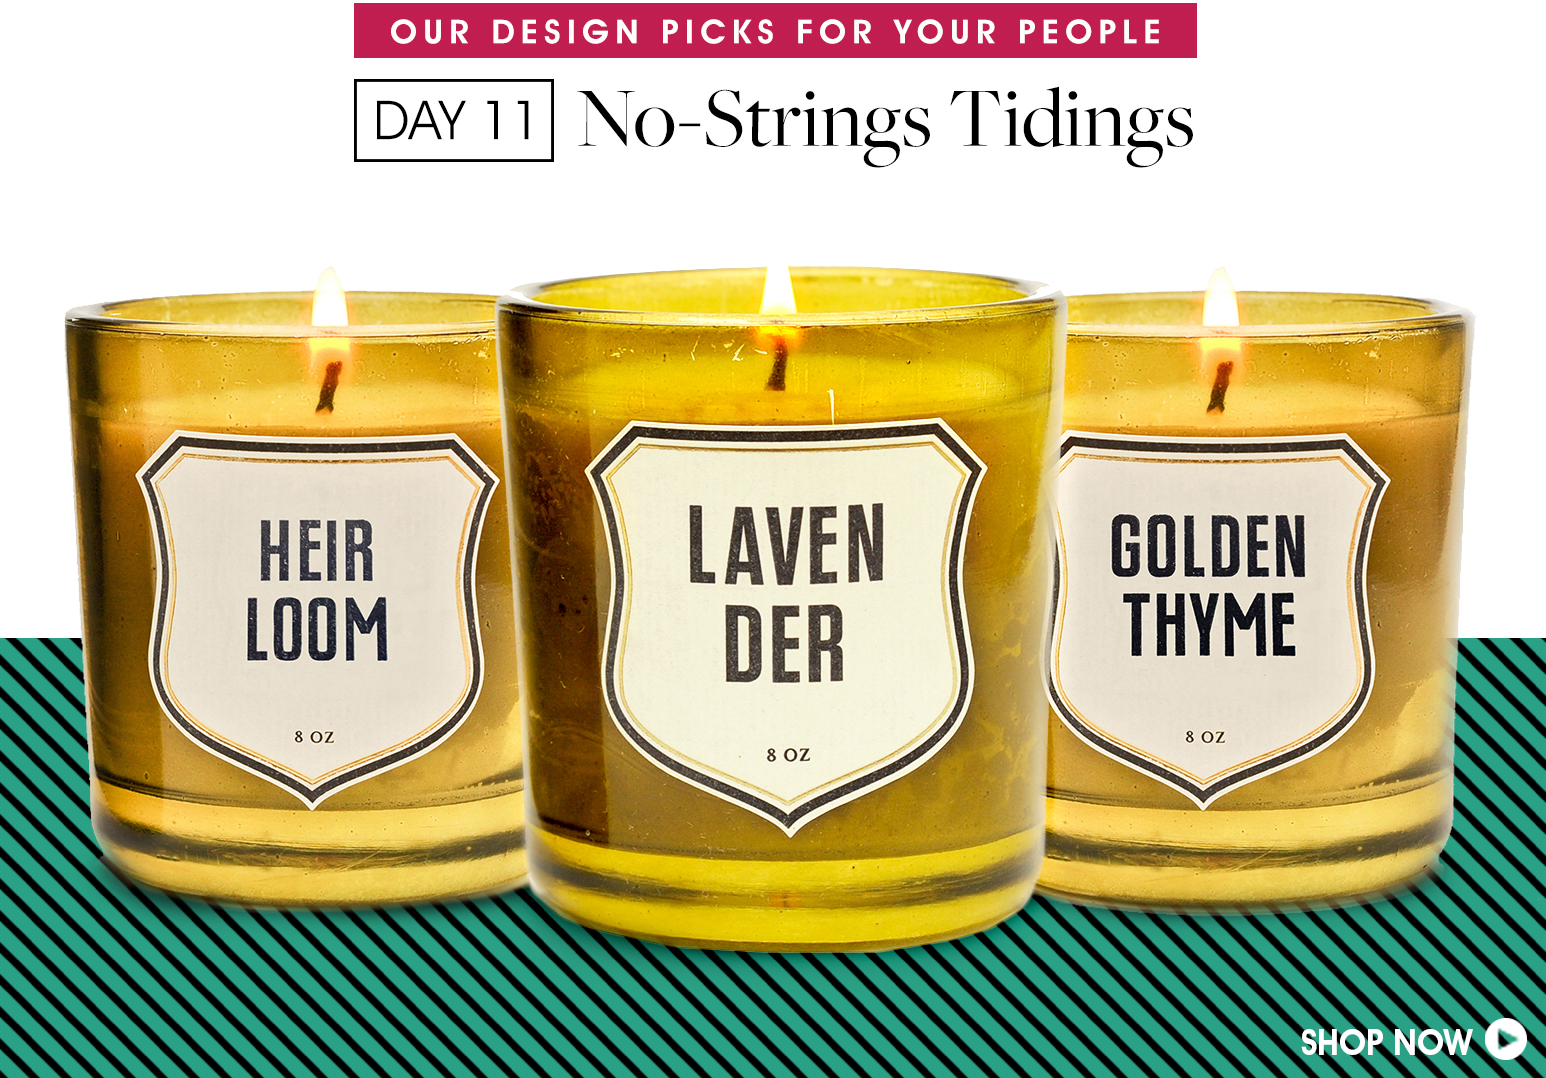 - 12 Days of Gifting - Day 11 No-Strings Tiding